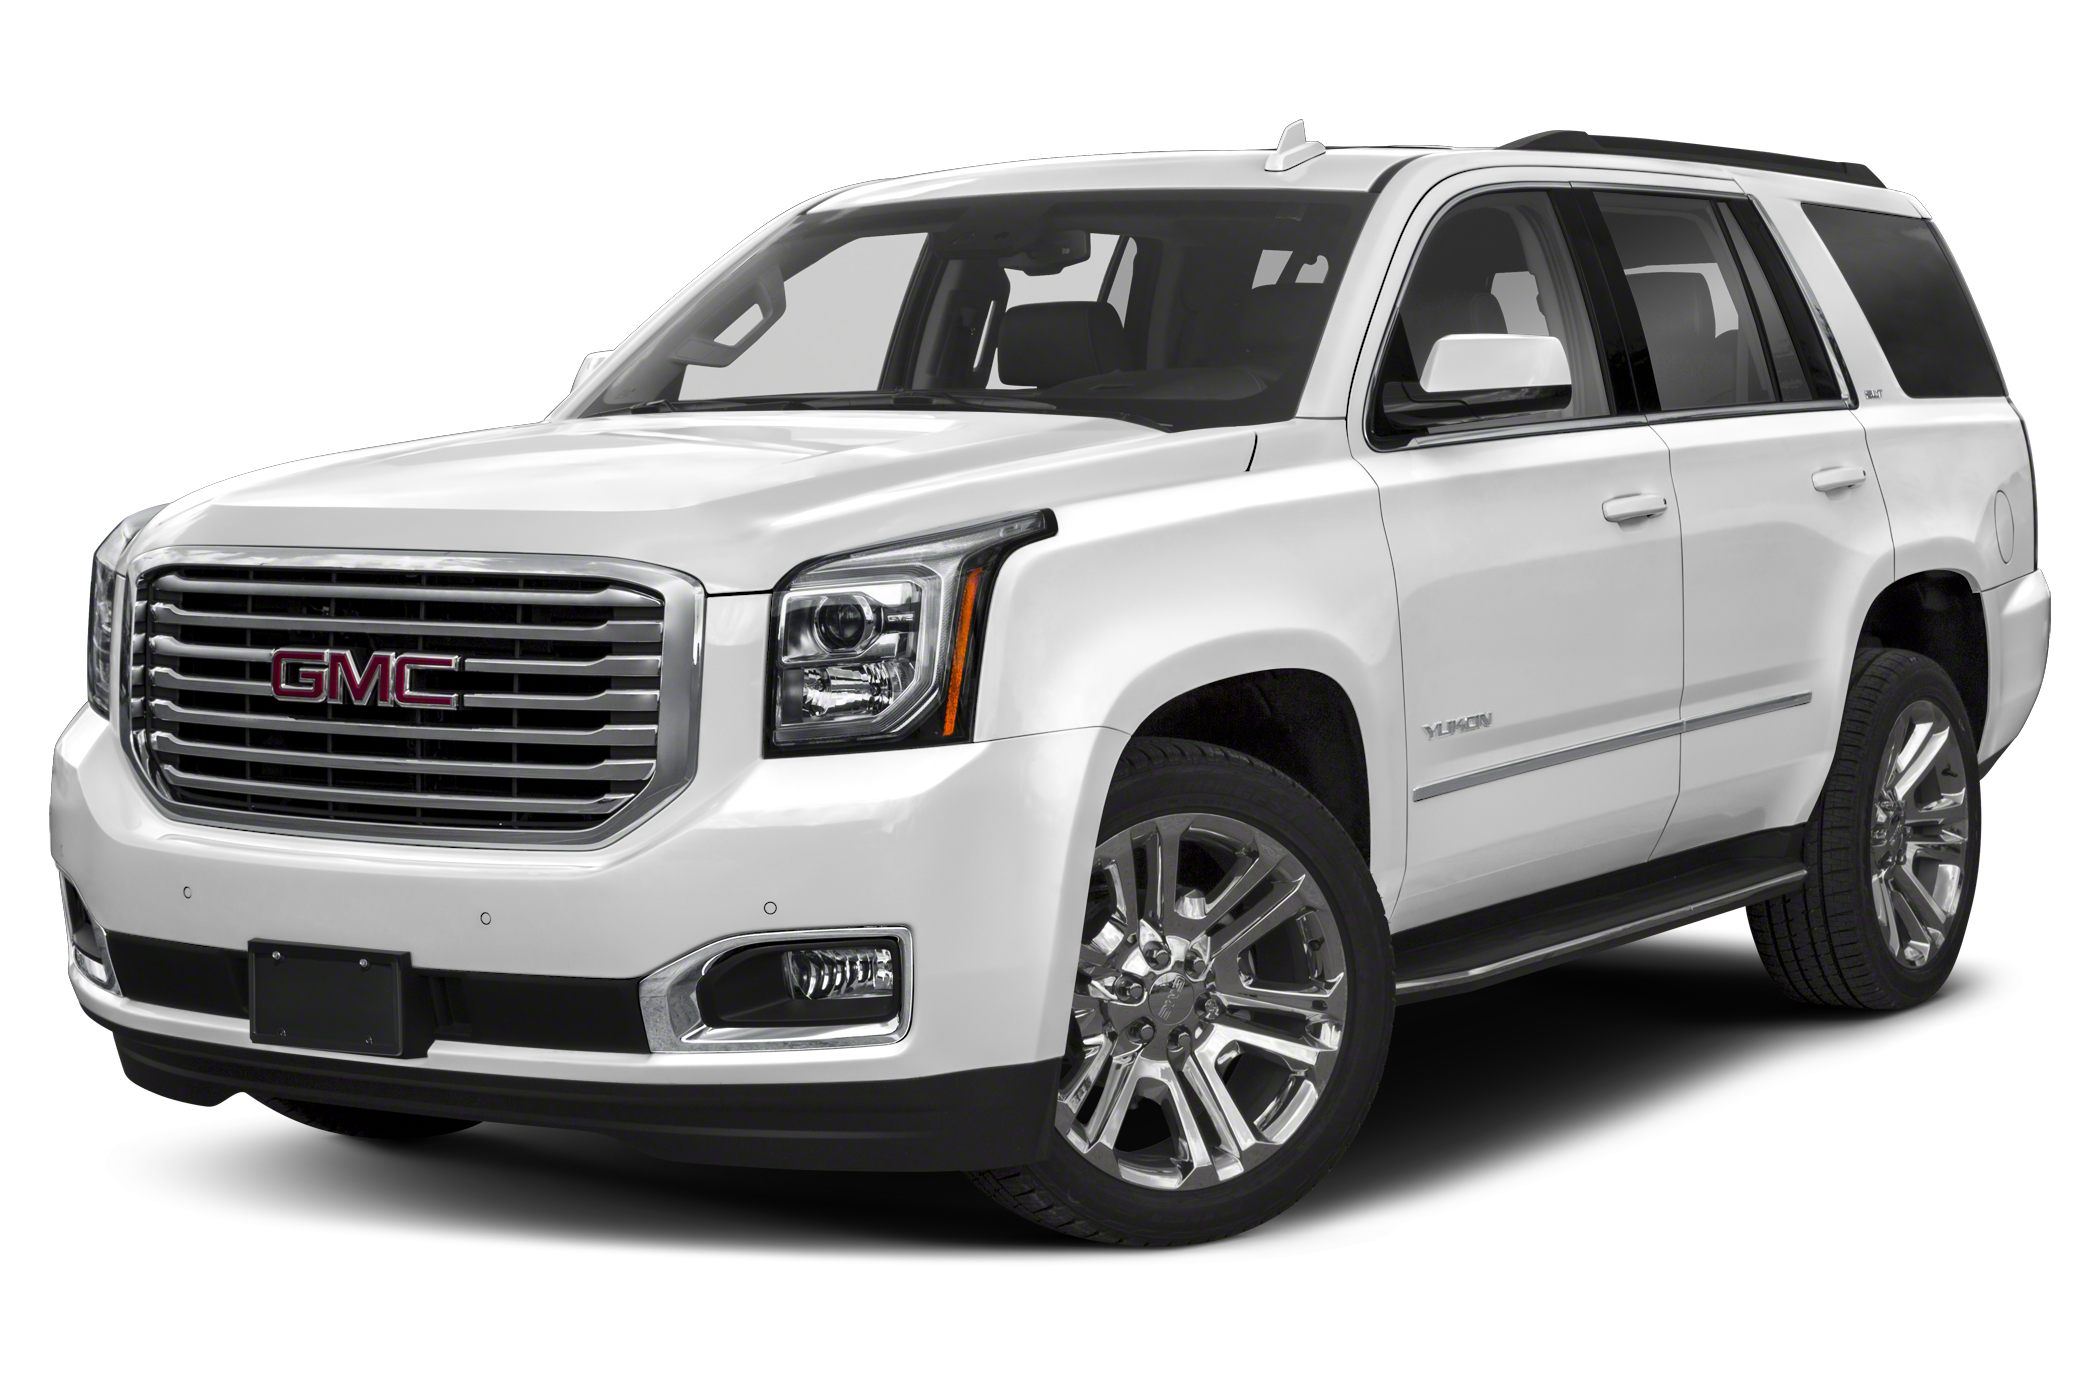 2018 GMC Yukon SLT This 2018 GMC Yukon SLT is complete with top-features such as the backup sensor